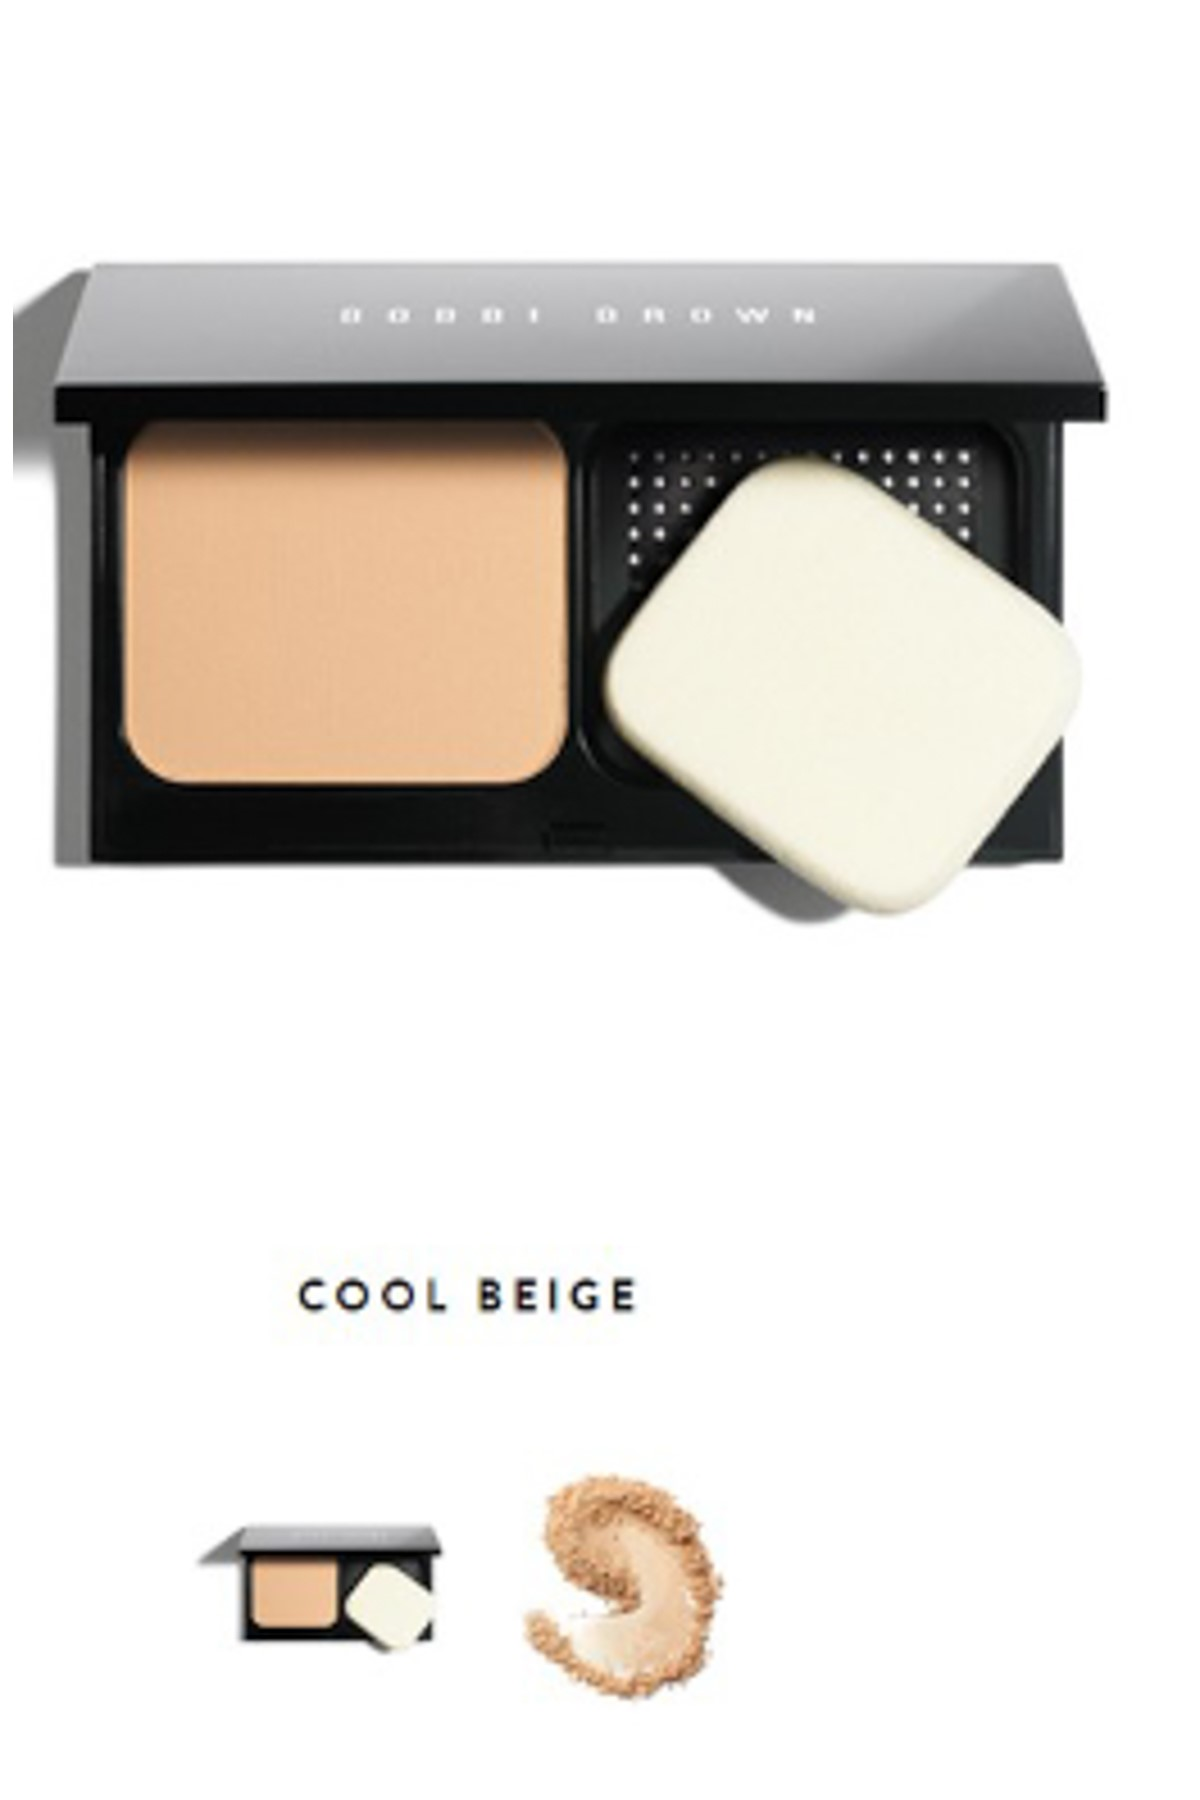 Bobbı Brown Pudra Fondöten – Skin Weightless Powder Foundation Cool Beige 11 G 716170131924